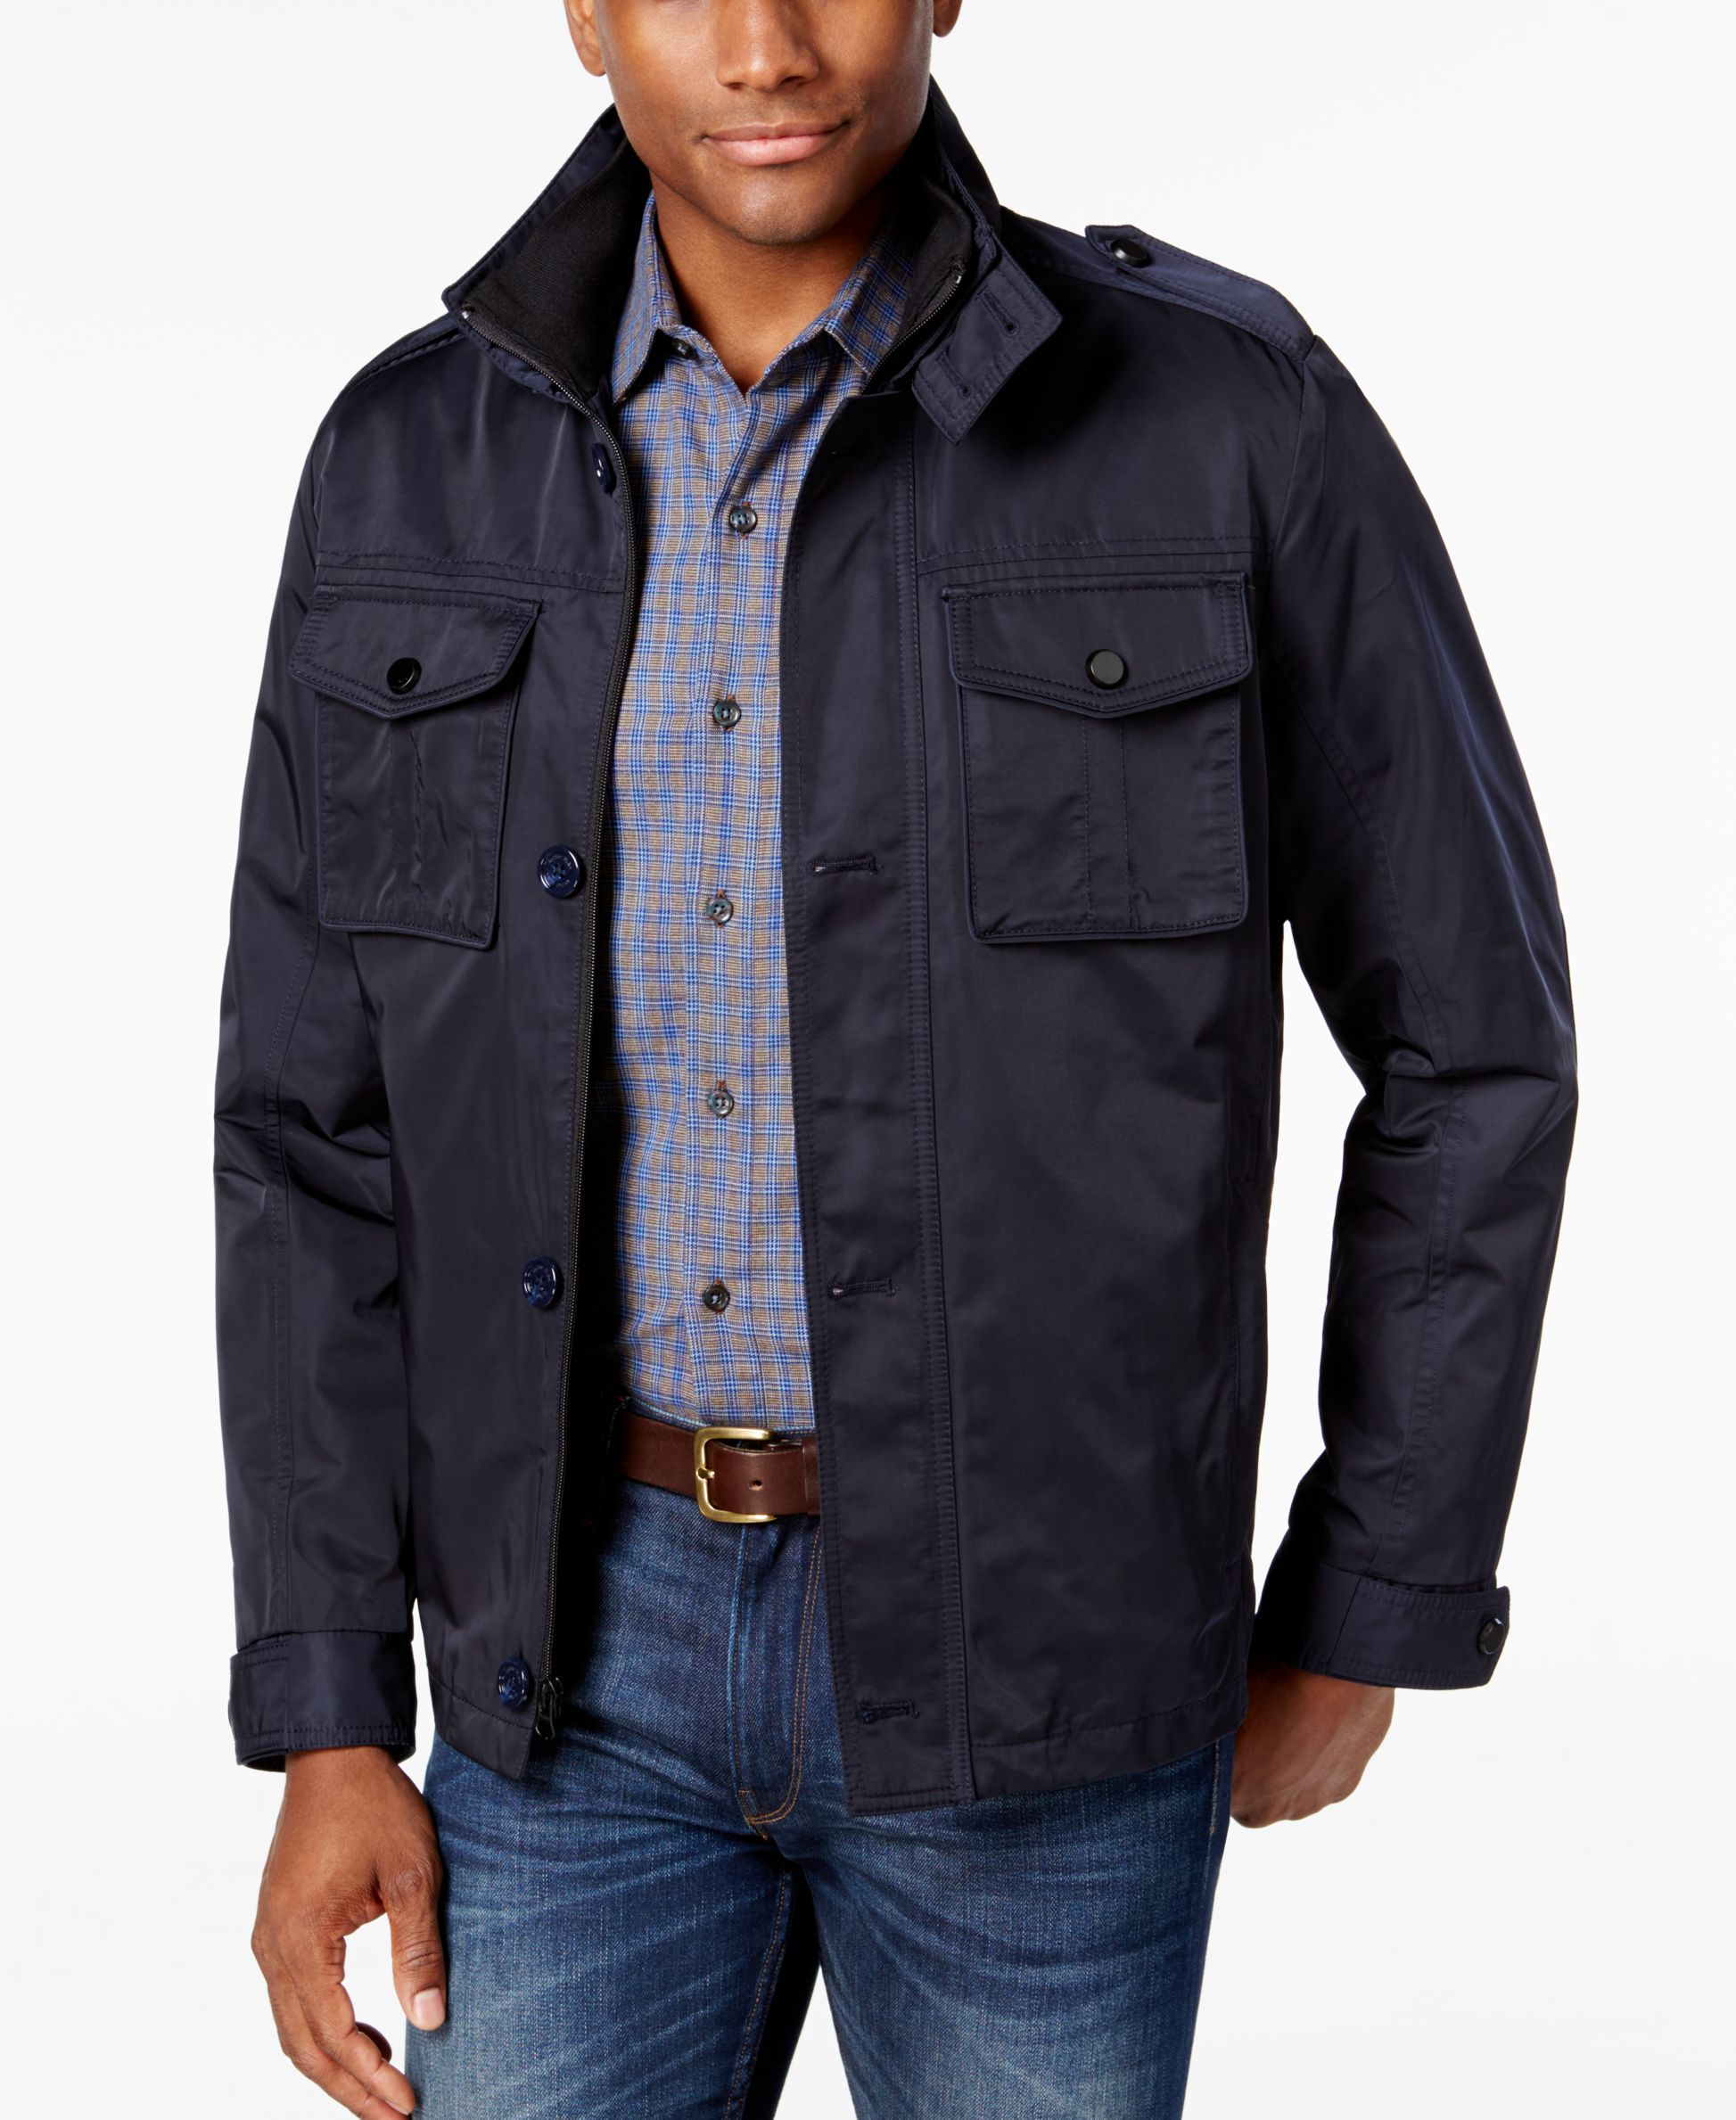 d49841c09 Tasso Elba Men's Four-Pocket Jacket, Only at Macy's | Products ...